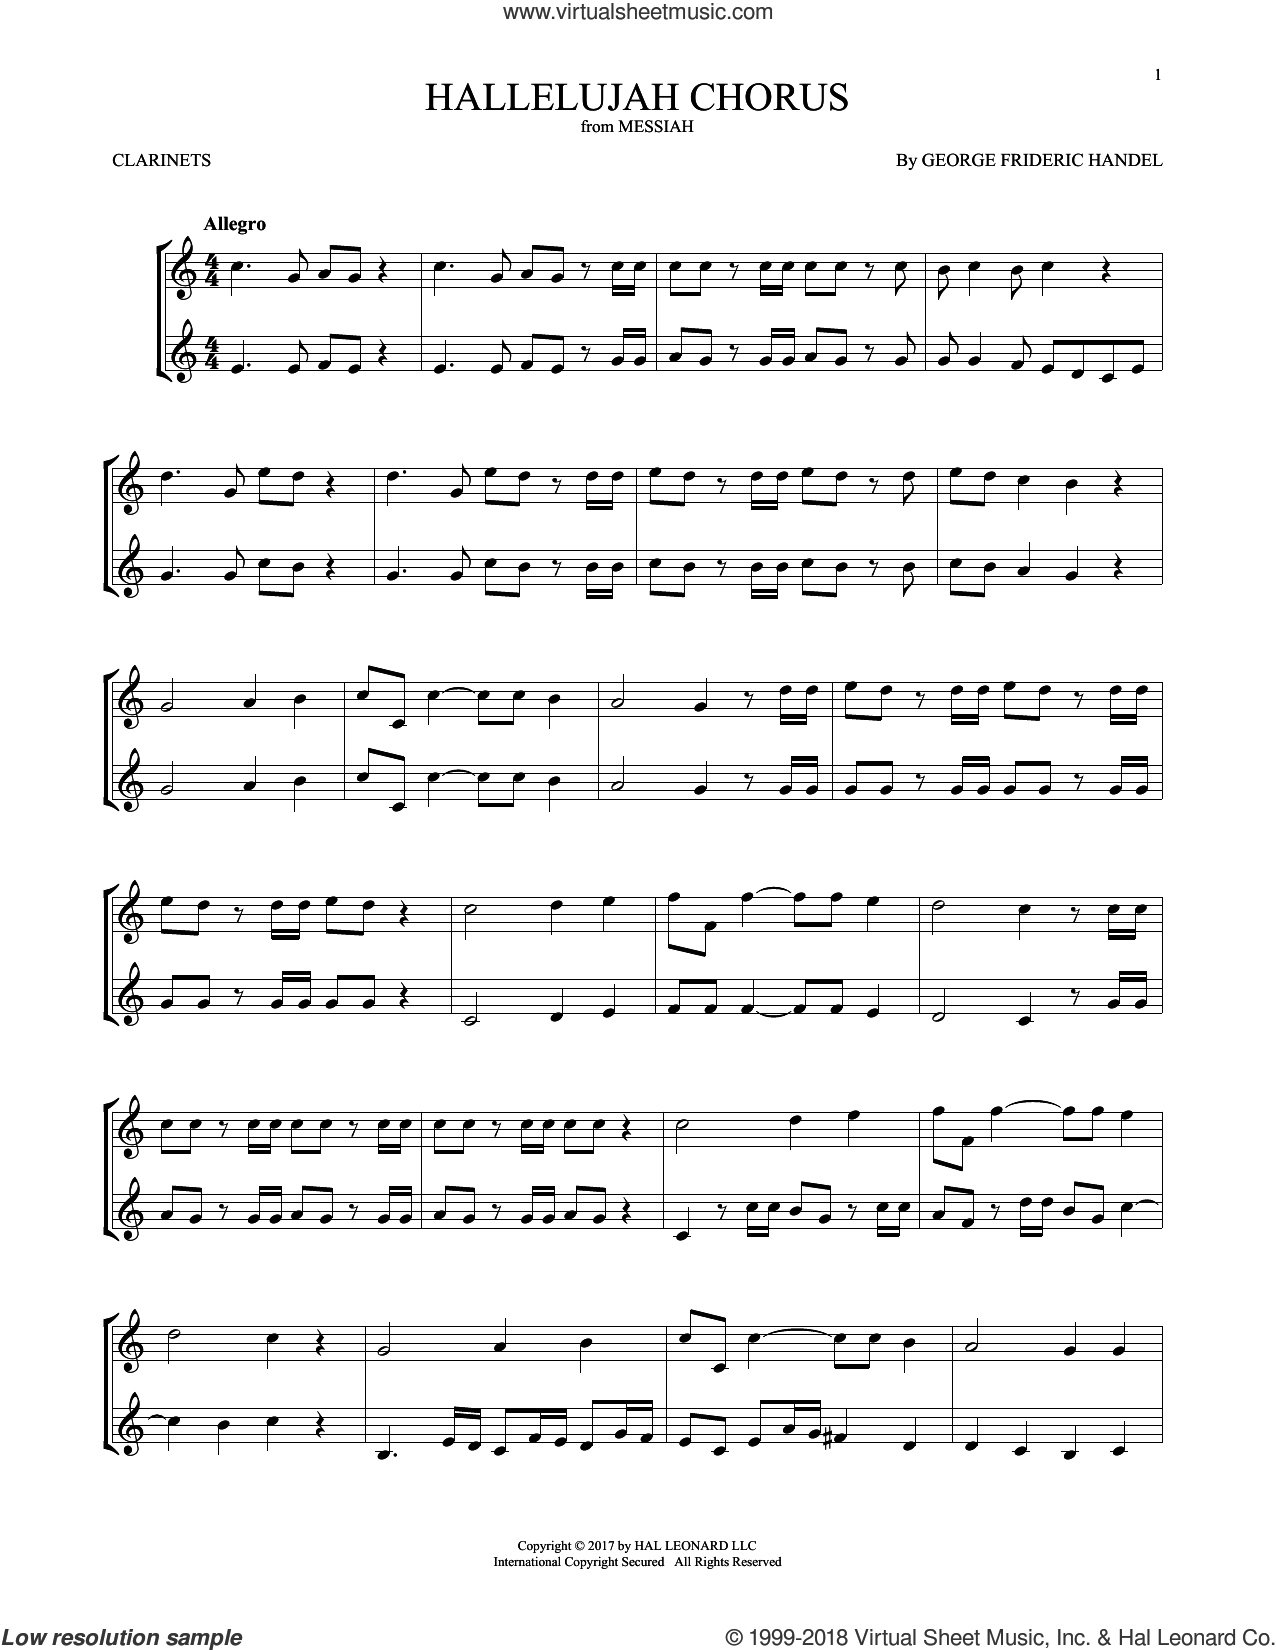 Hallelujah Chorus sheet music for two clarinets (duets) by George Frideric Handel, classical score, intermediate skill level